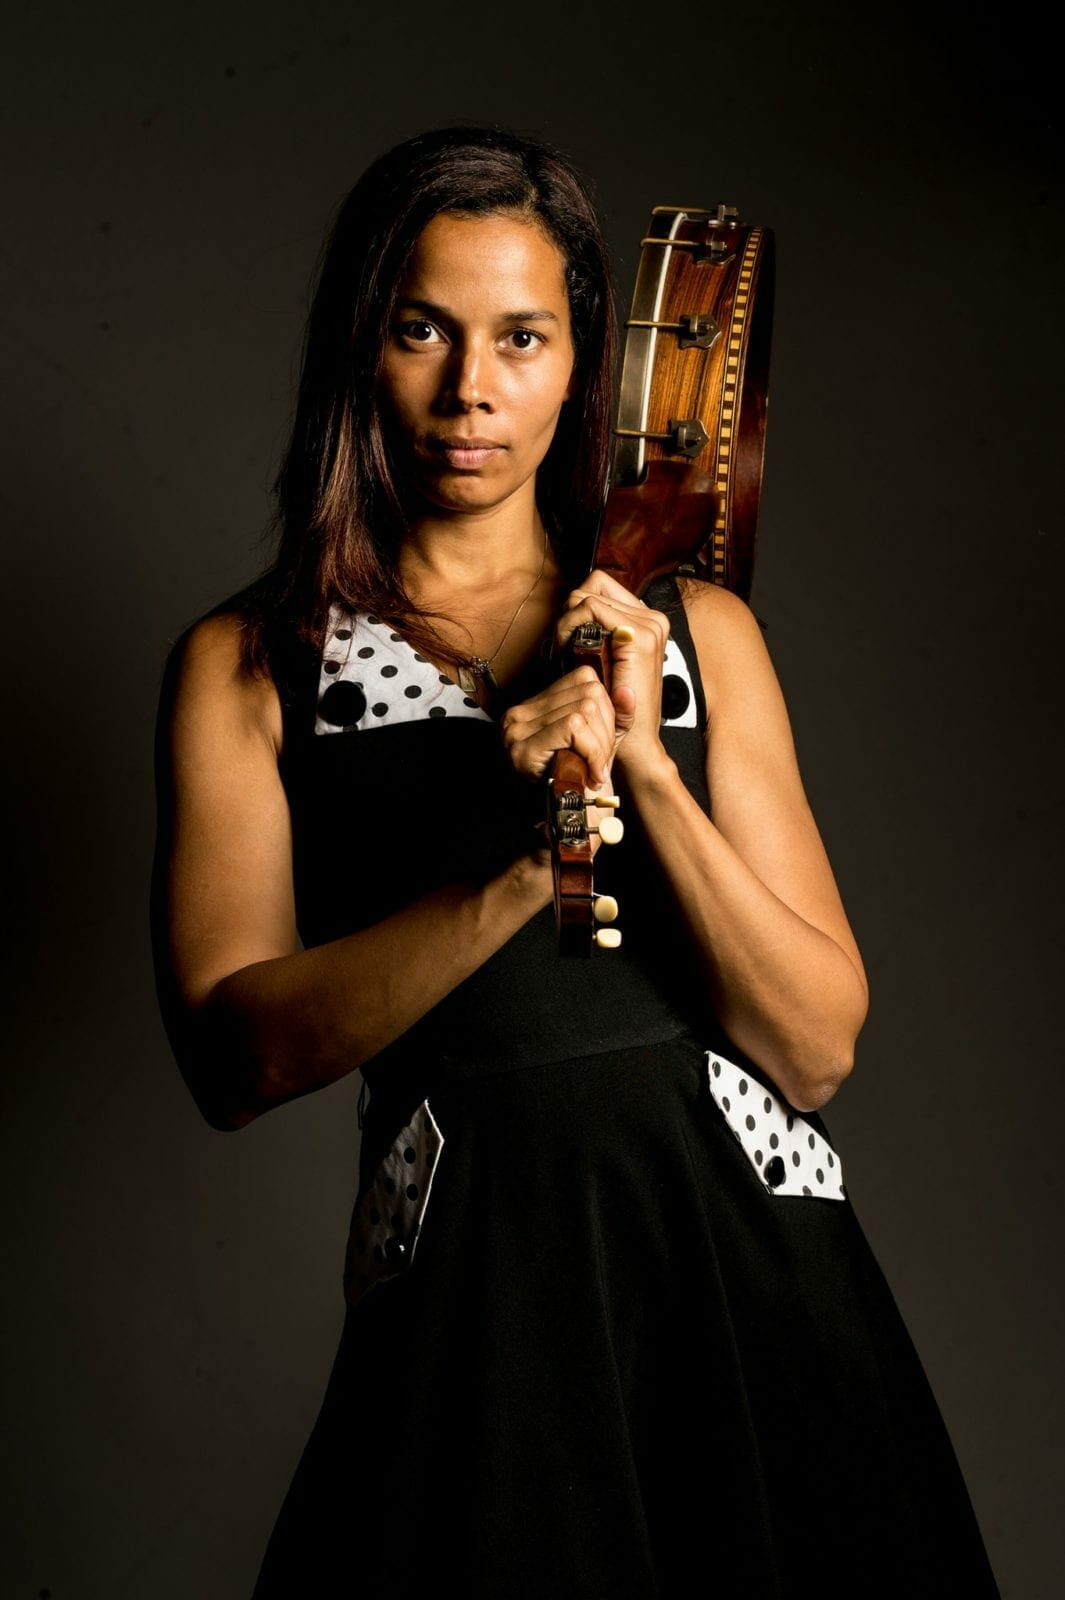 Rhiannon Giddens holds her banjo over her shoulder.